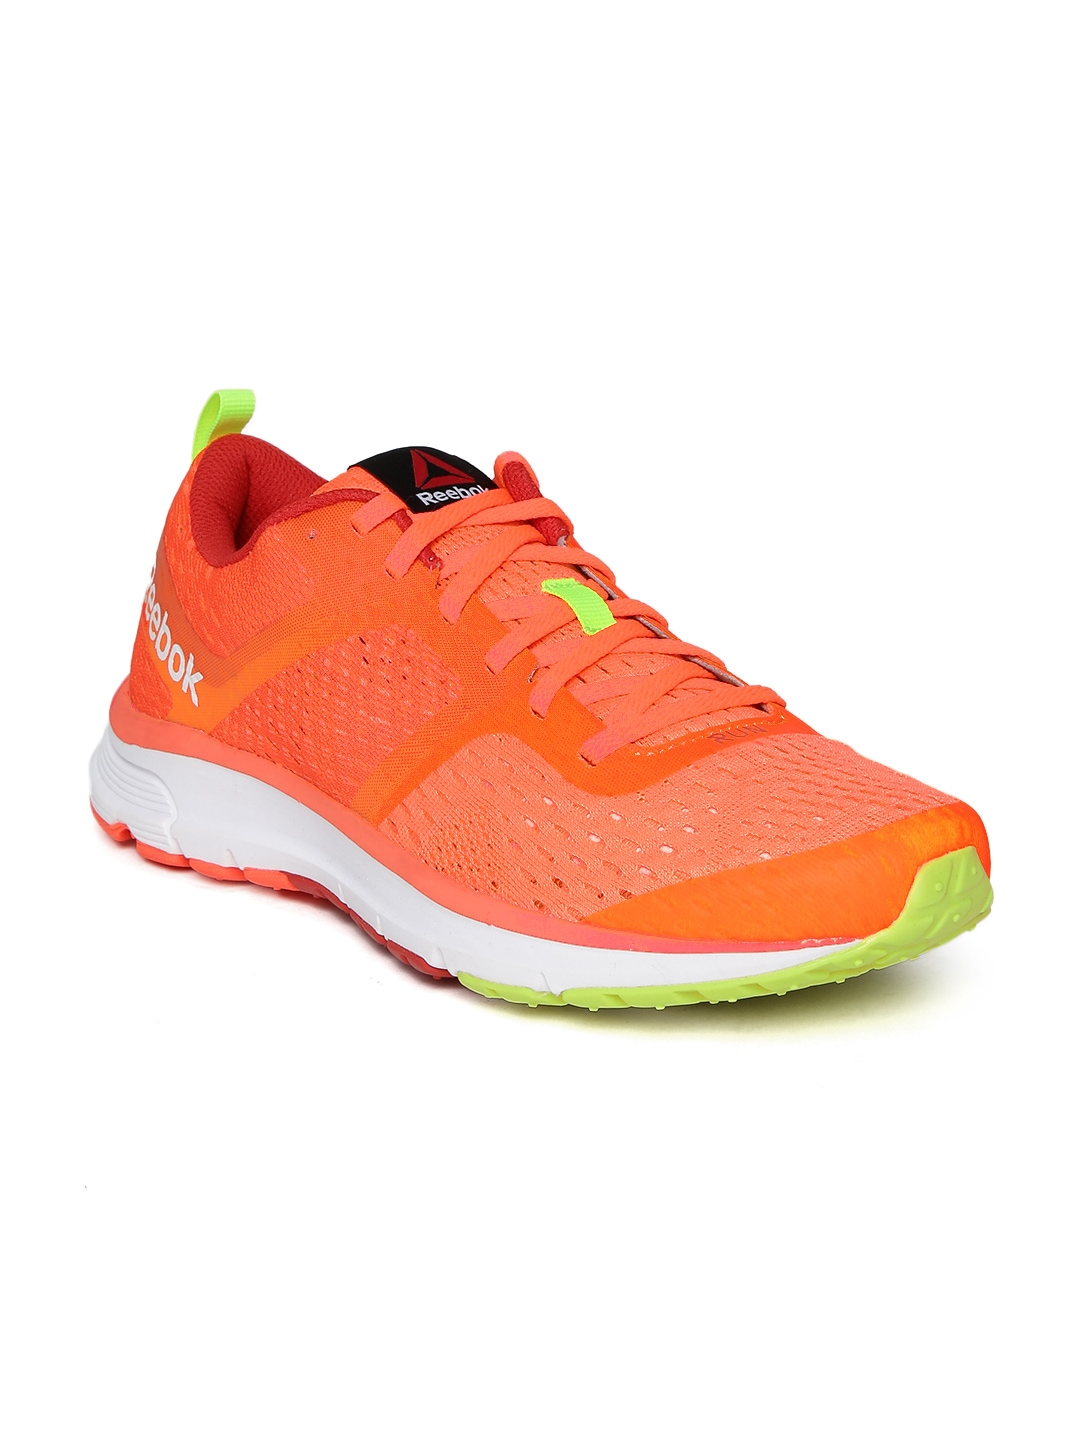 Reebok v68163 Women Orange One Distance Running Shoes- Price in India